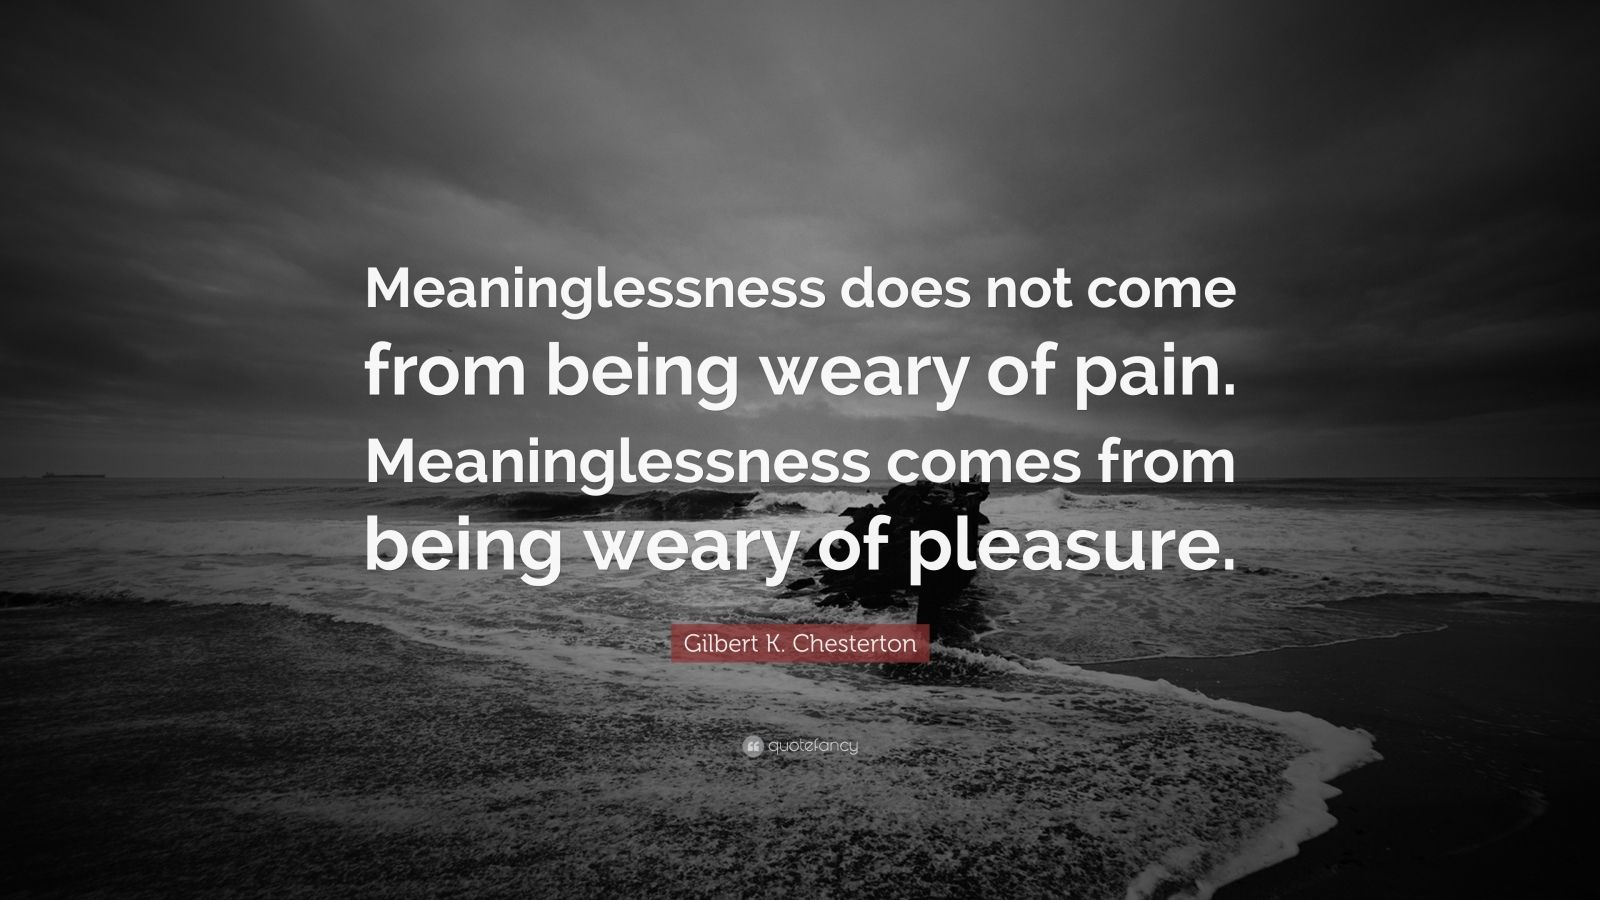 "Gilbert K. Chesterton Quote: ""Meaninglessness does not come from being weary of pain. Meaninglessness comes from being weary of pleasure."""